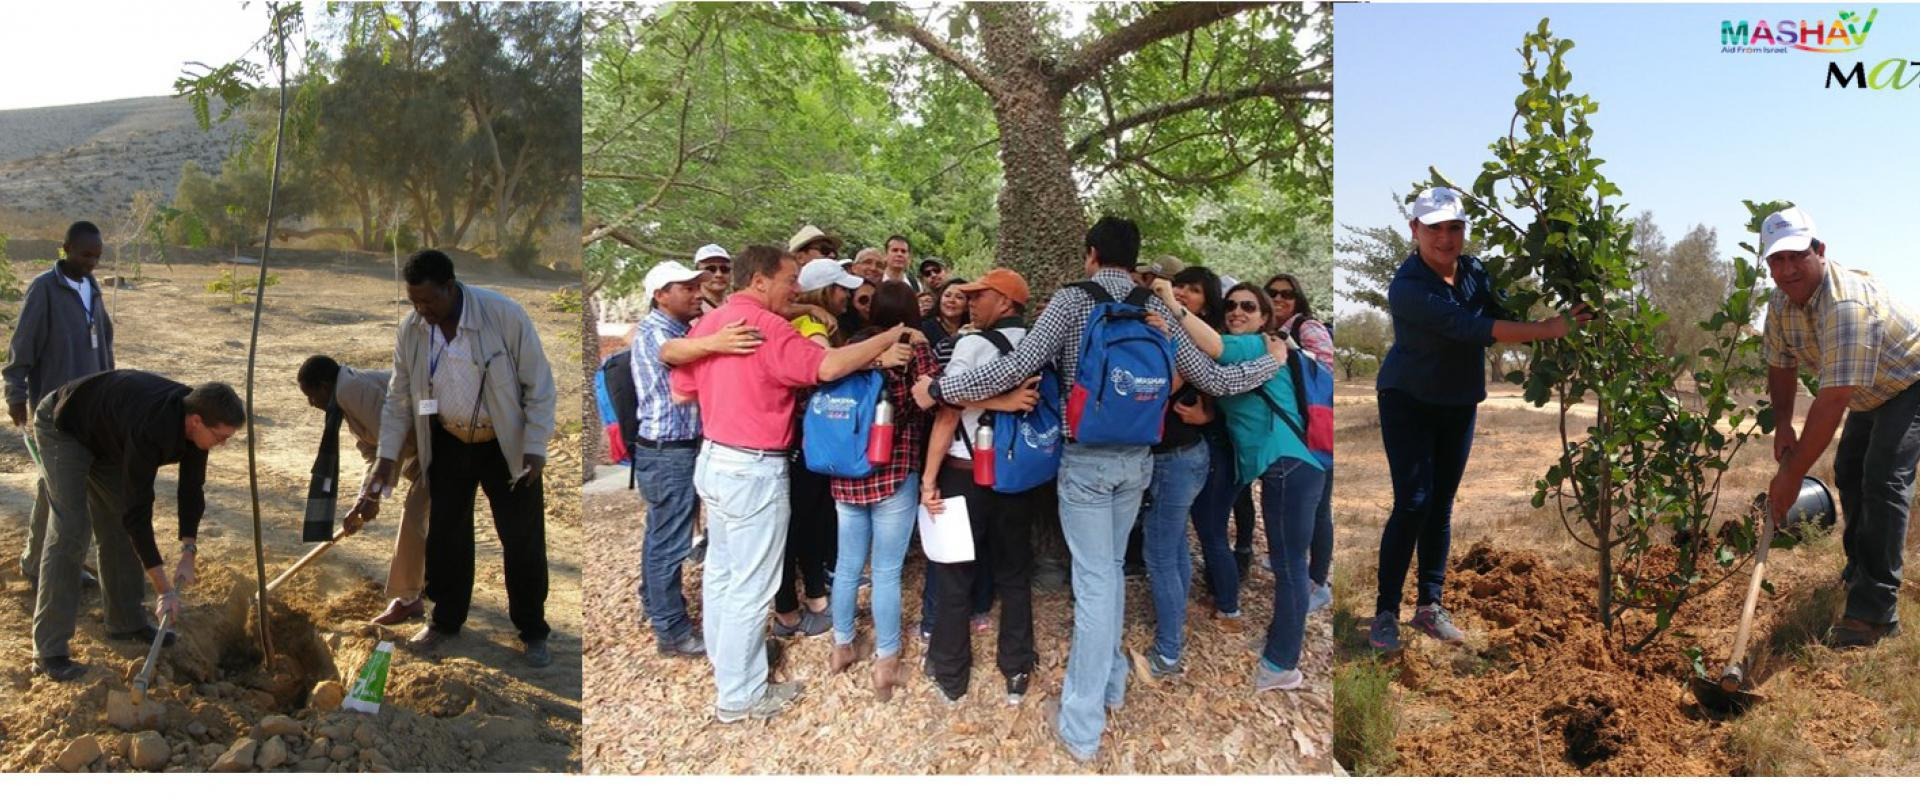 Participants in Tree Planting Activities